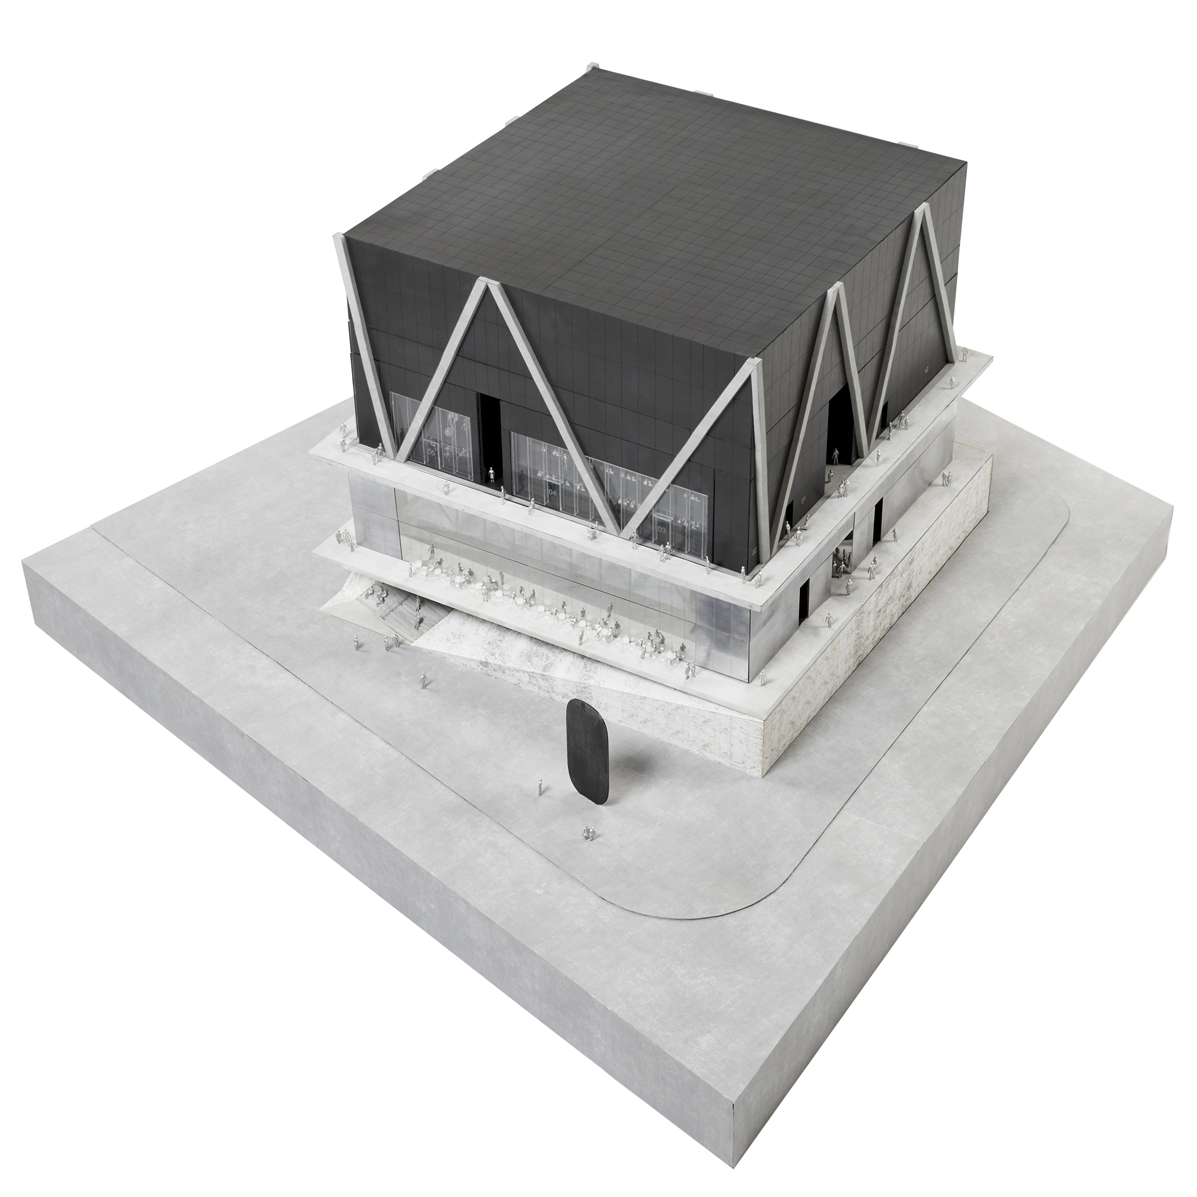 Digital model of the Ronald O. Perelman Performing Arts Center at the World Trade Center without the facade. By Chris Janjic